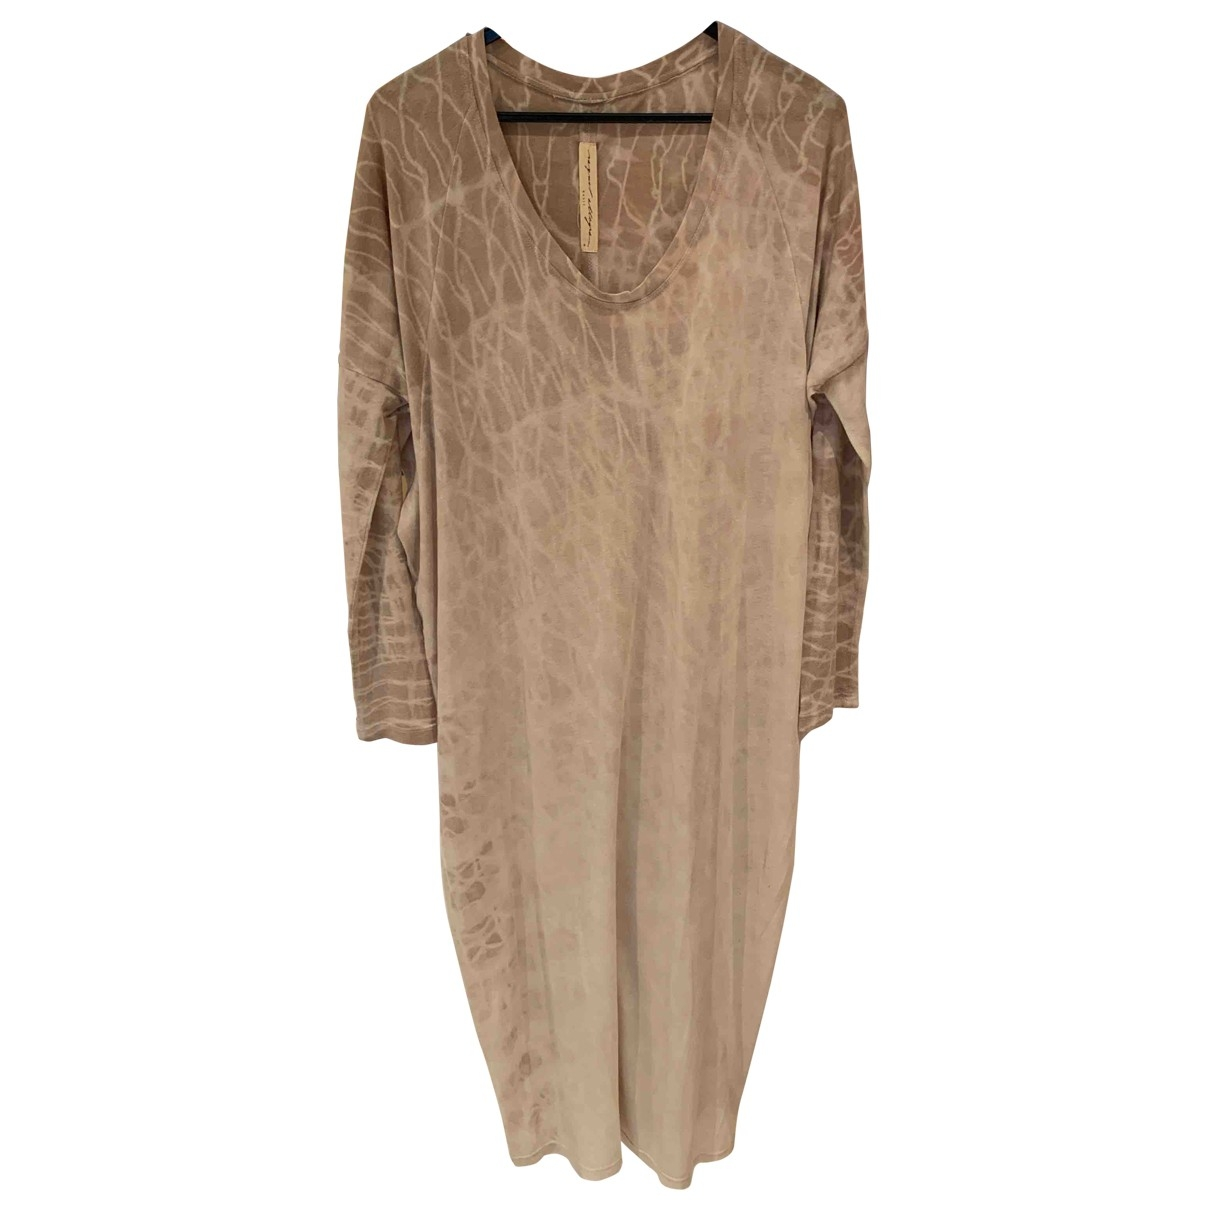 Raquel Allegra \N Beige Cotton - elasthane dress for Women 0 0-5